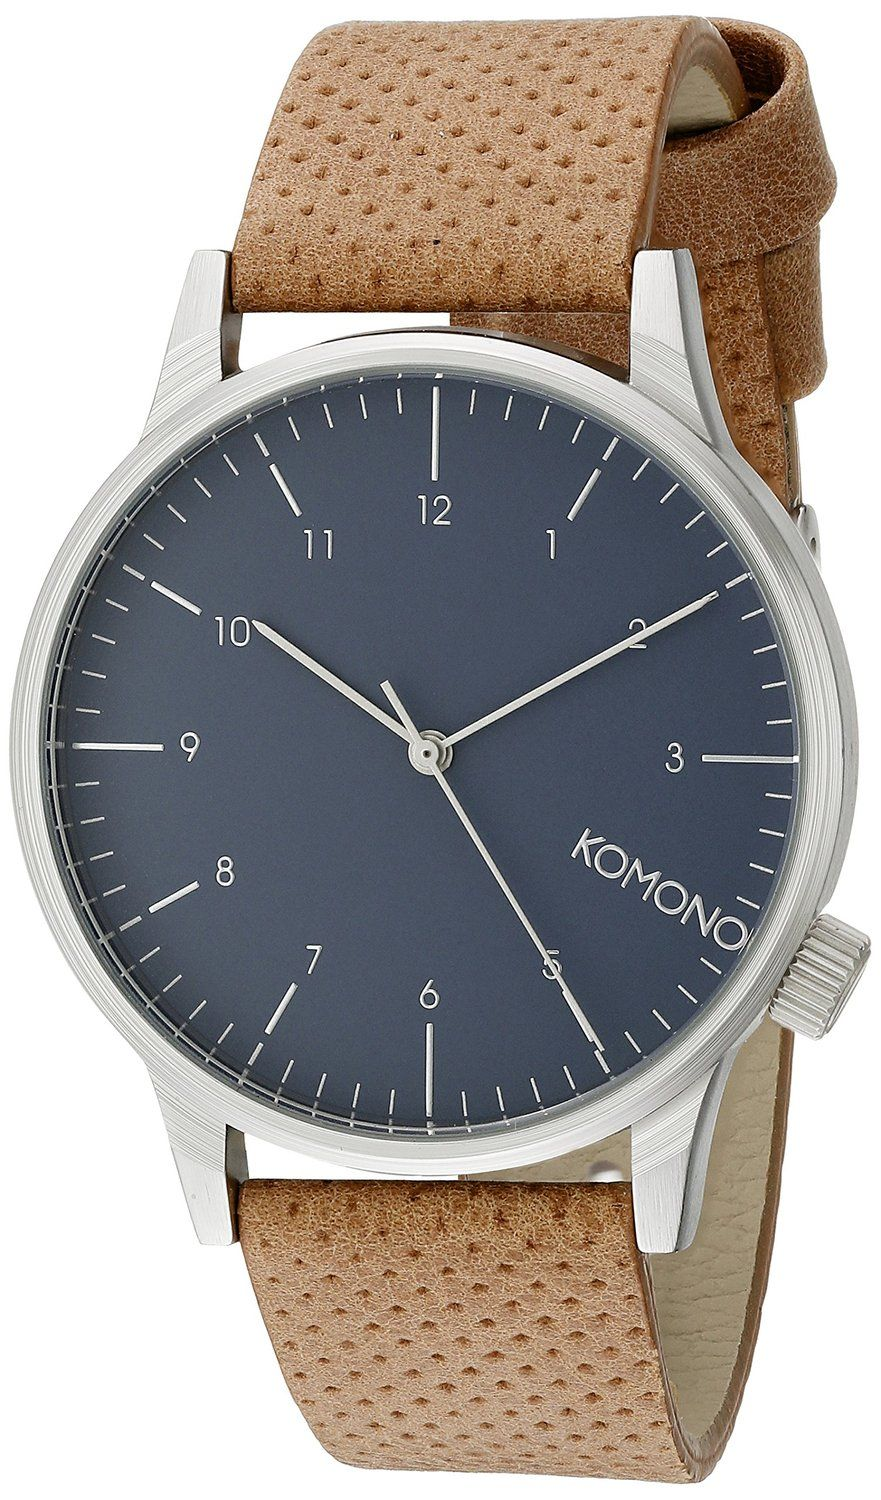 komono kom w2000 montre homme quartz analogique bracelet polyur thane marron amazon. Black Bedroom Furniture Sets. Home Design Ideas